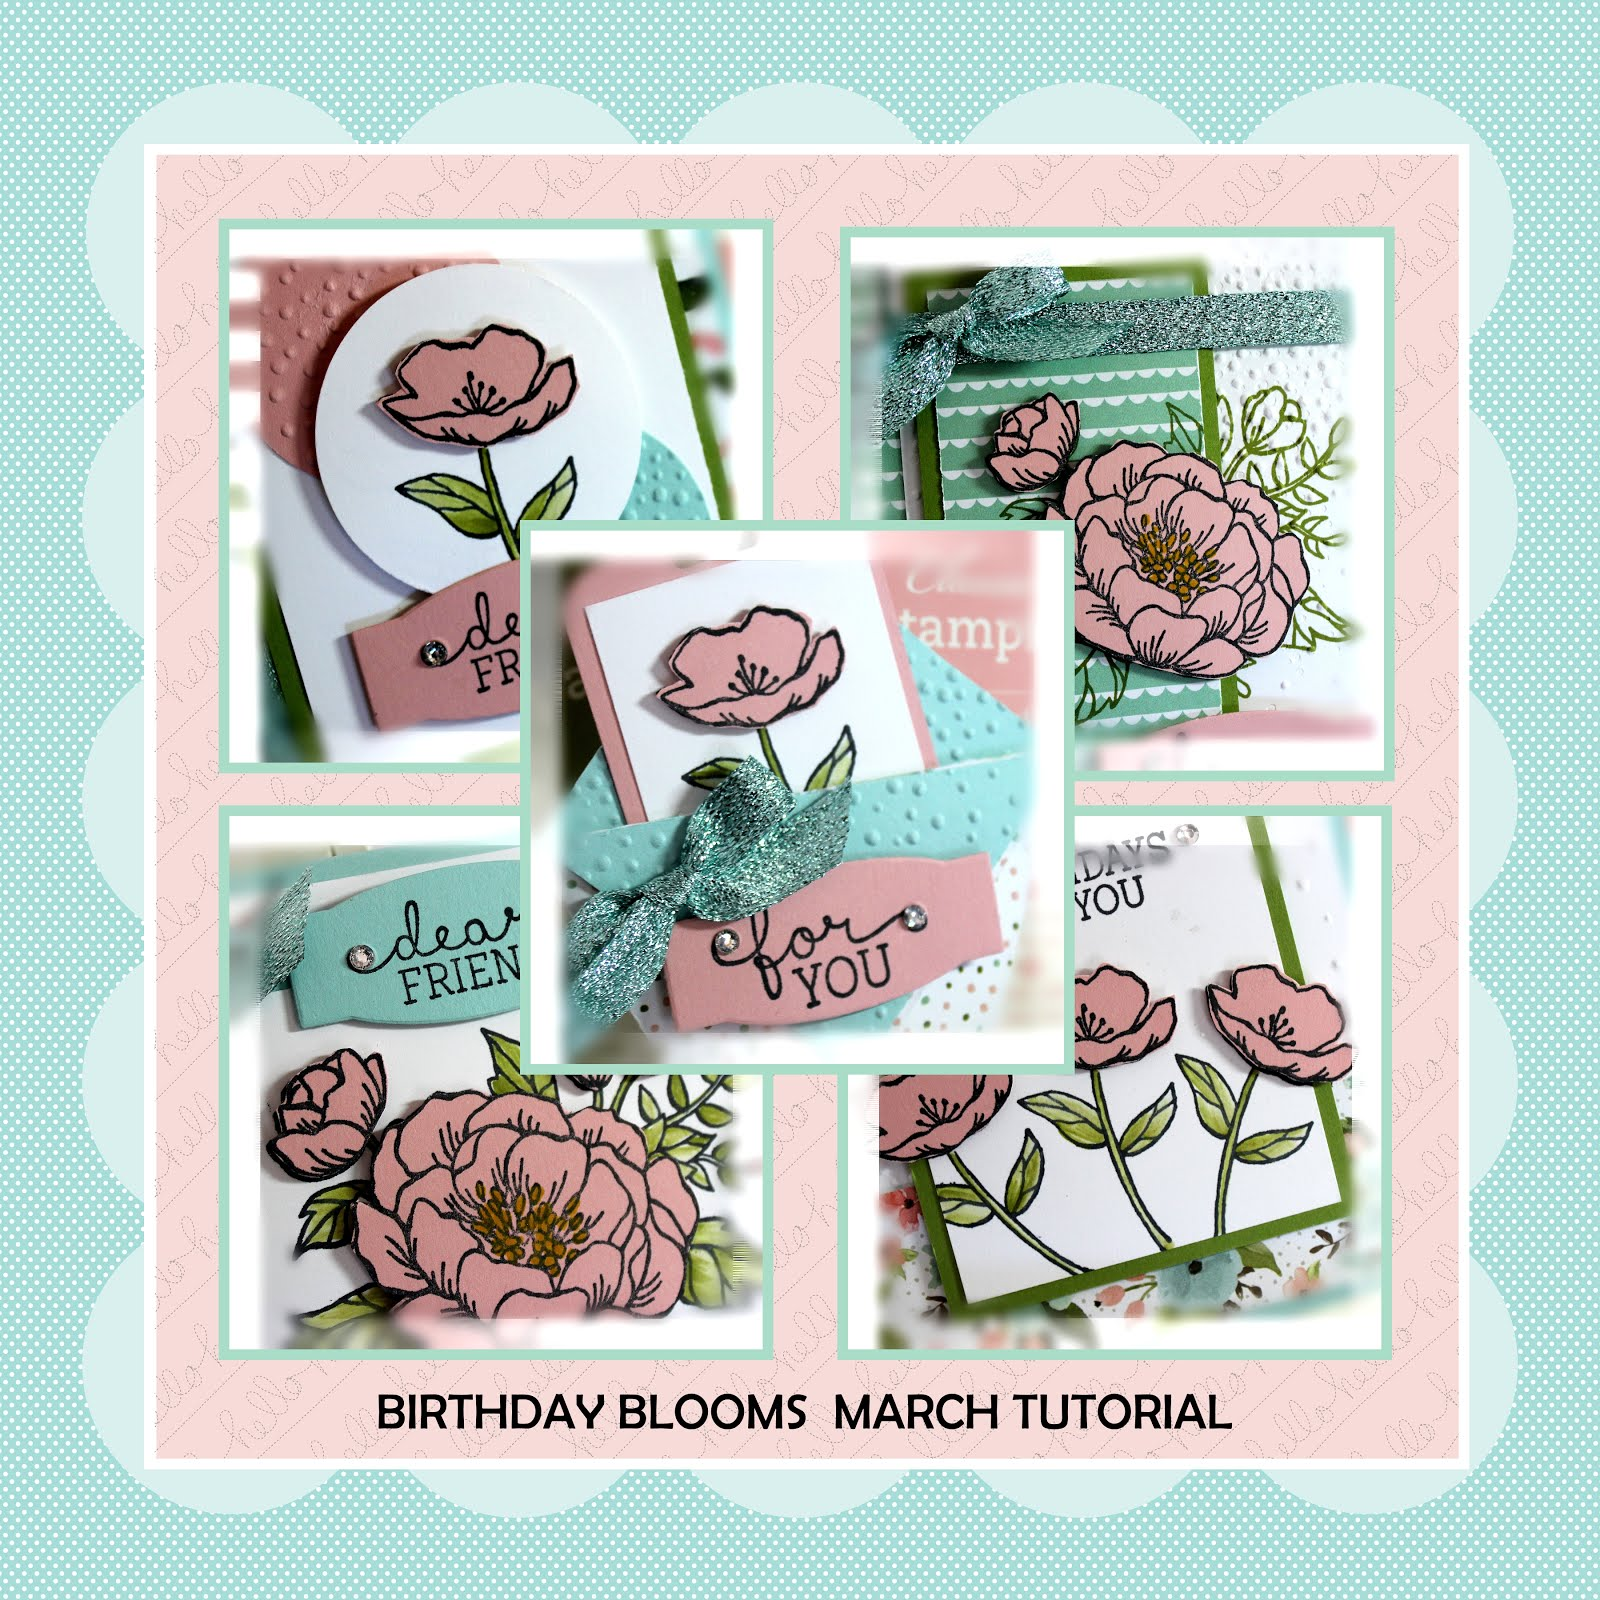 March 2016 Birthday Blooms Tutorial